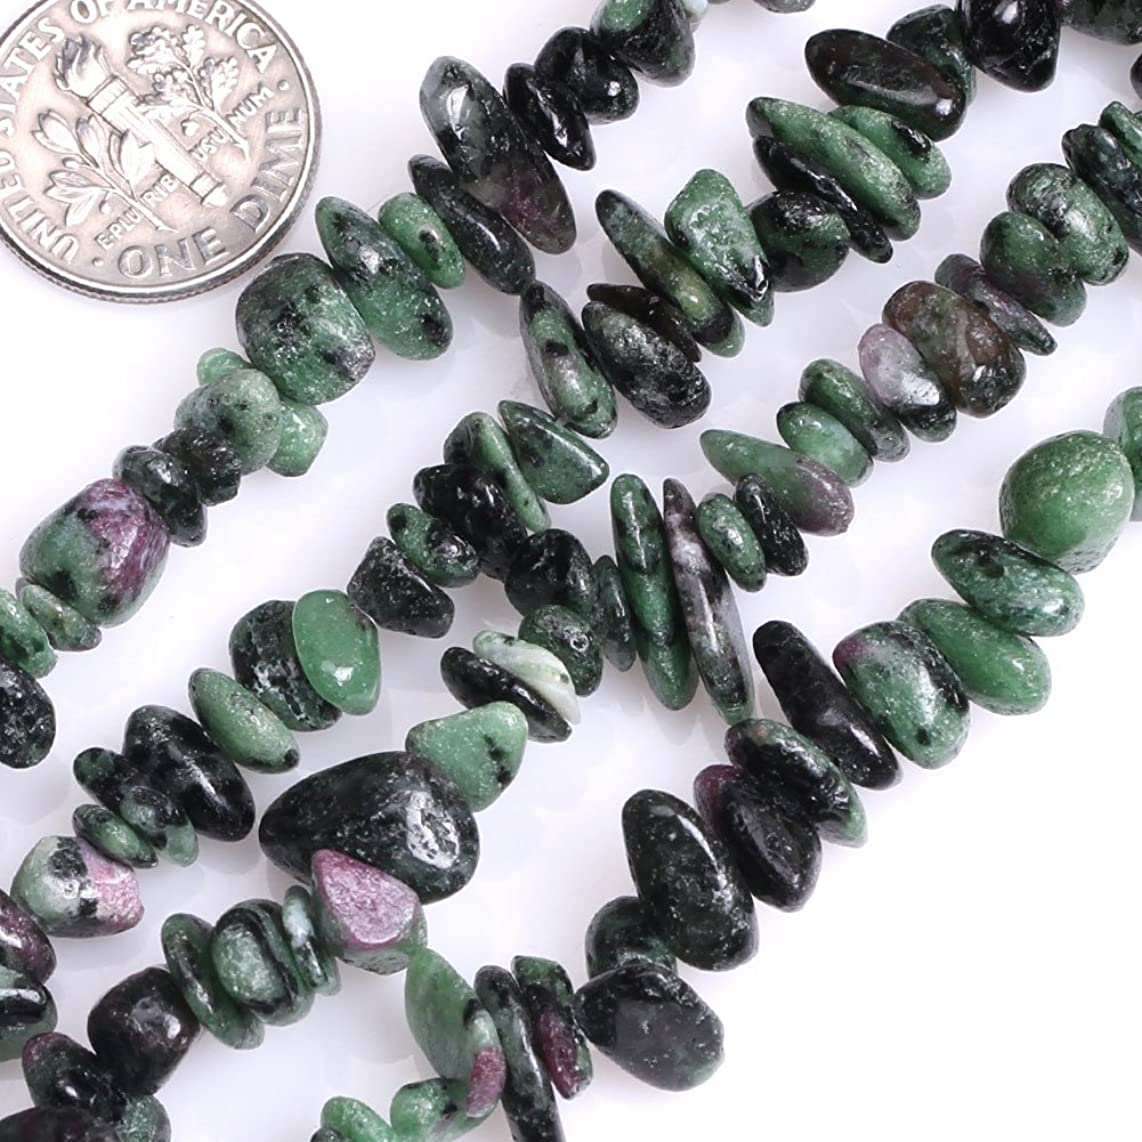 GEM-inside 6mm Chip Green Ruby Zoisite Chips Loose Beads for Jewelry Making Jewelry Beading Supplies for Women